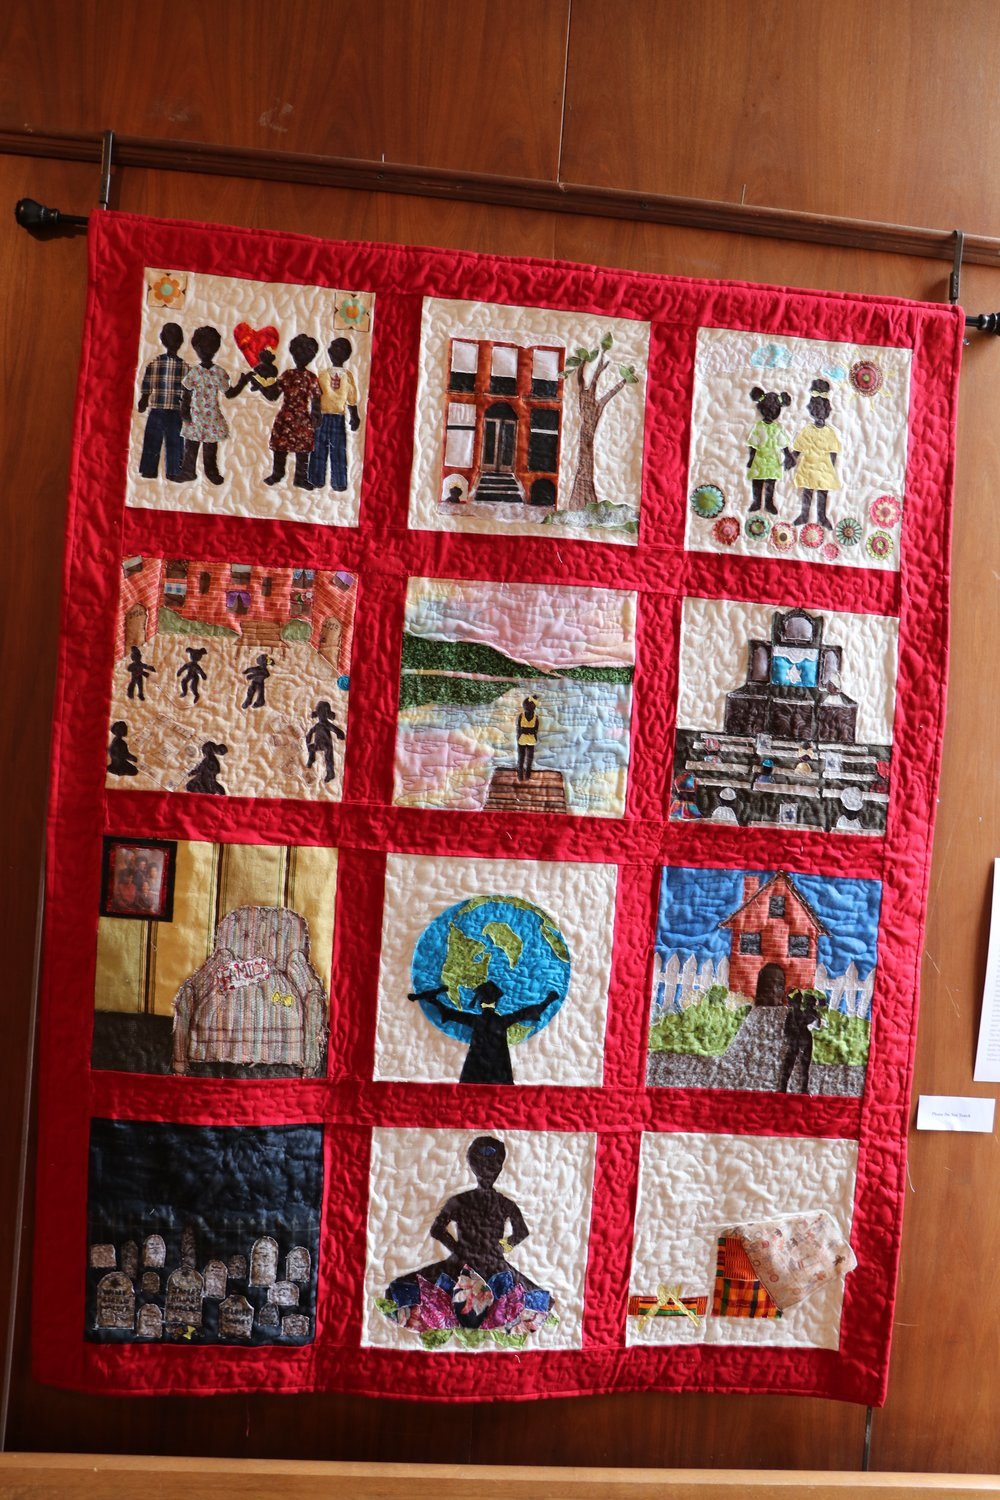 Kim Taylor's autobiographical quilt tells her story from her father giving her to his sister to her picking up quilting as a hobby.